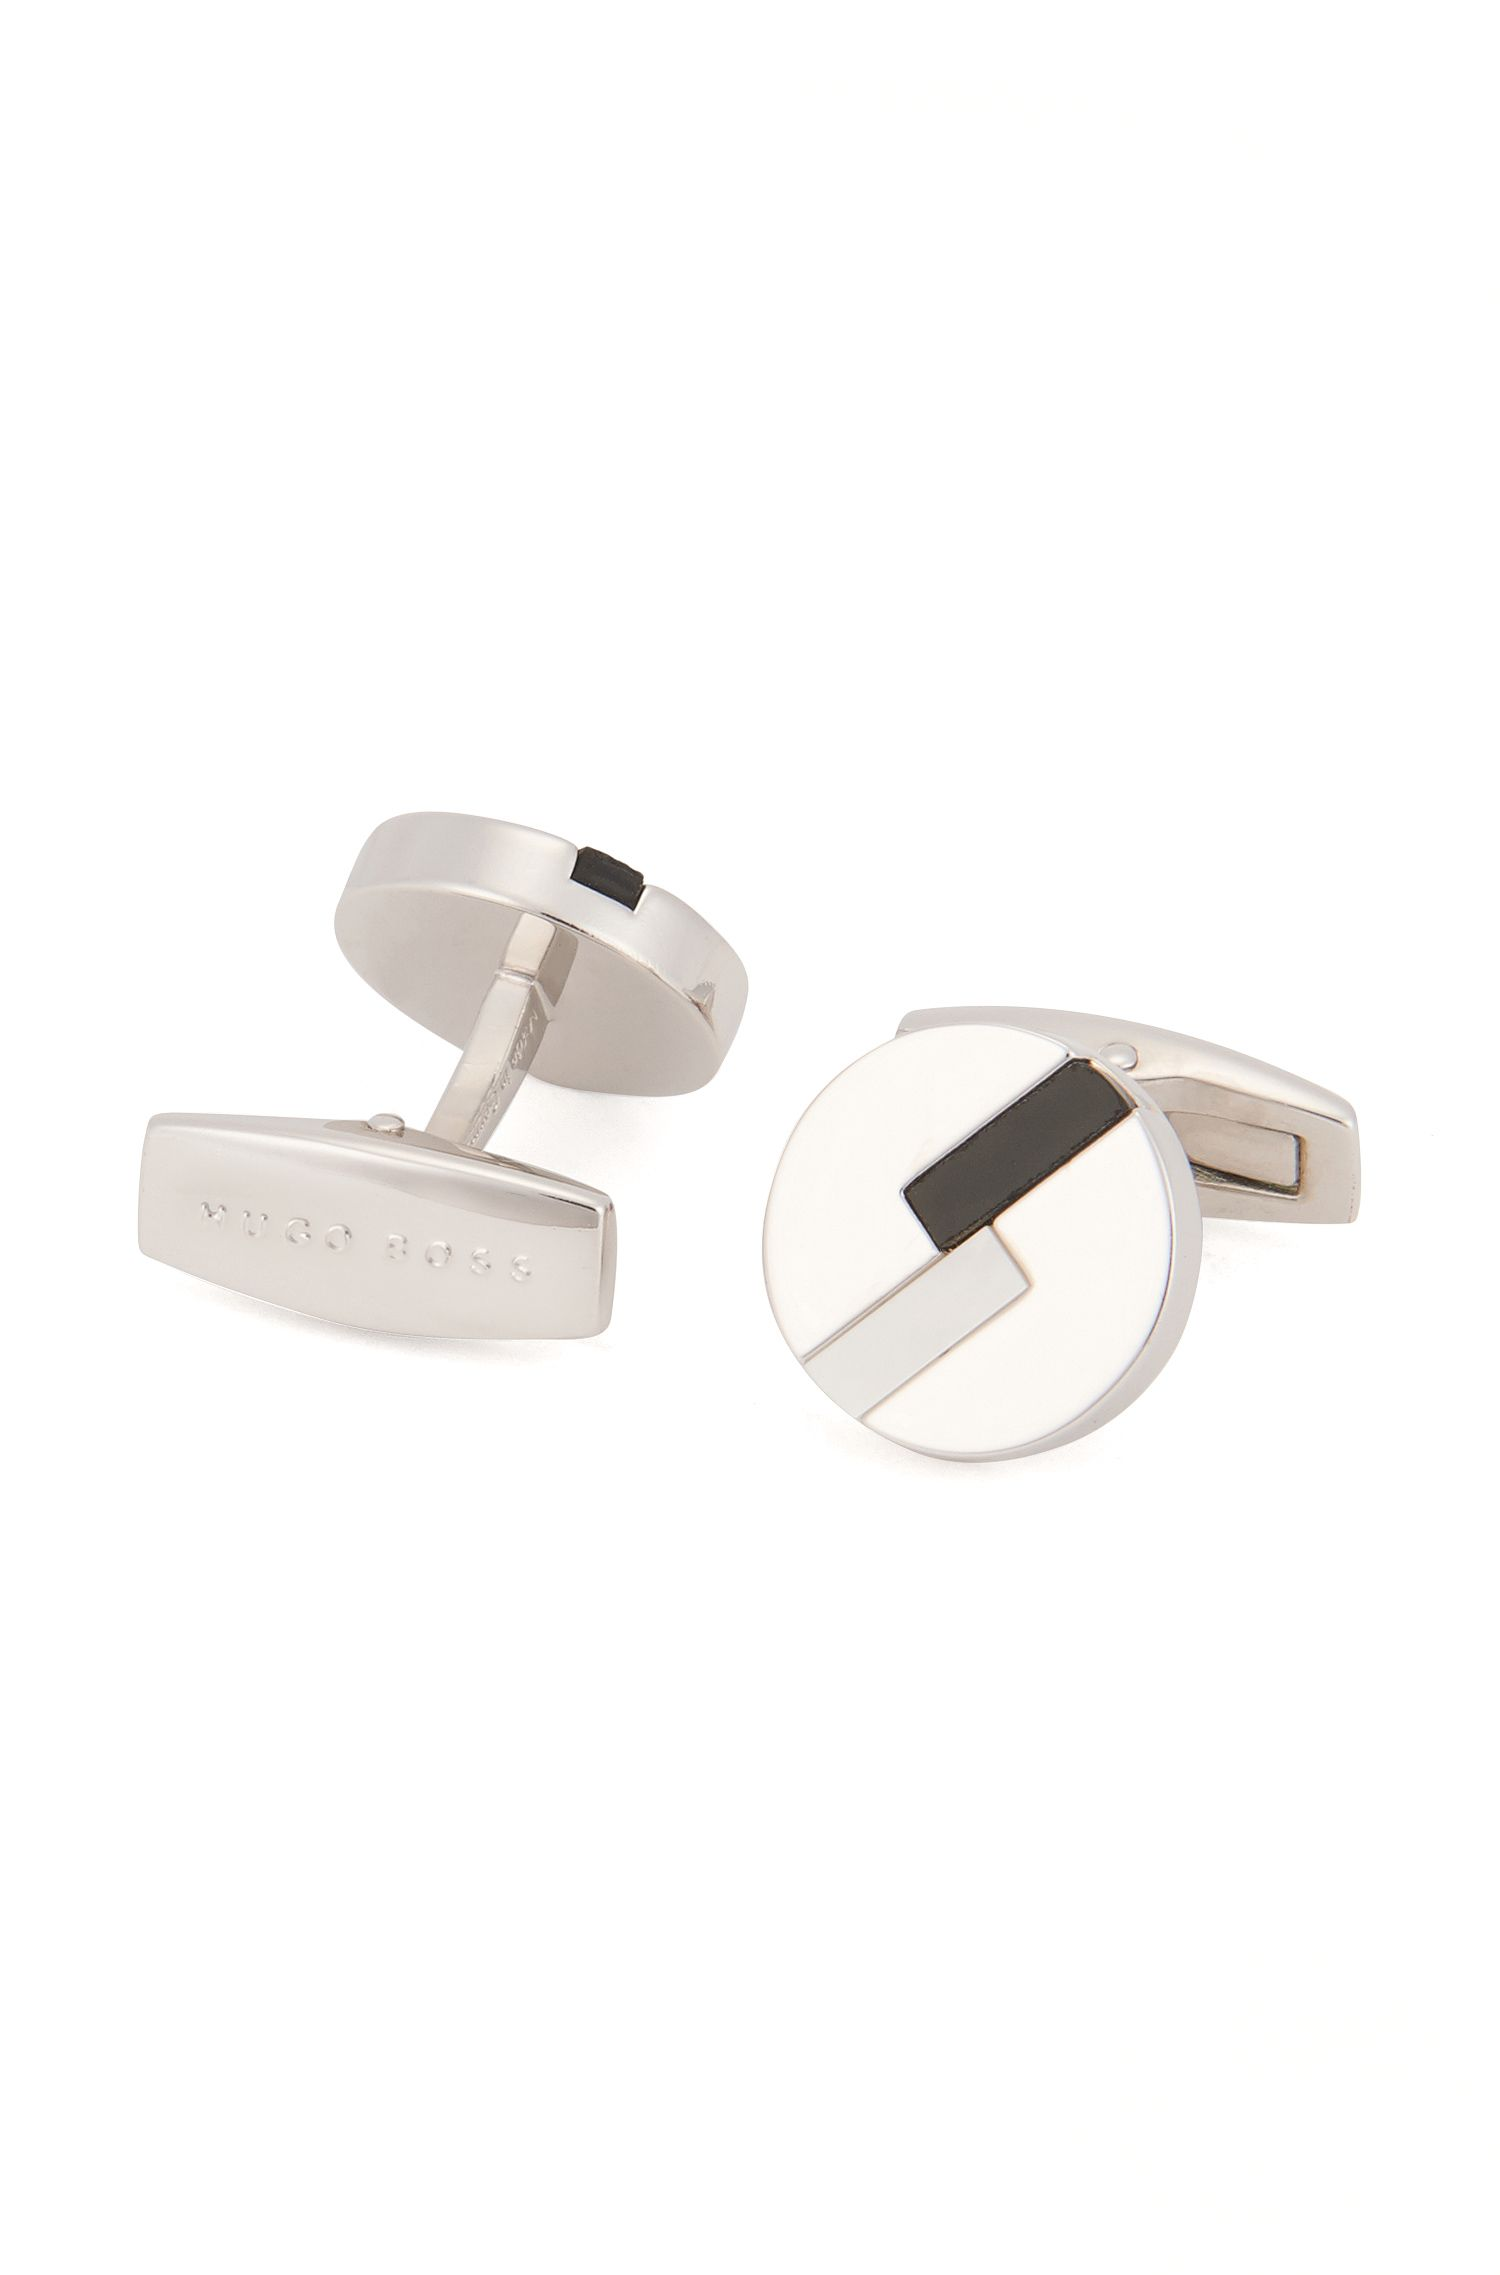 Round cufflinks with mother-of-pearl and onyx accents